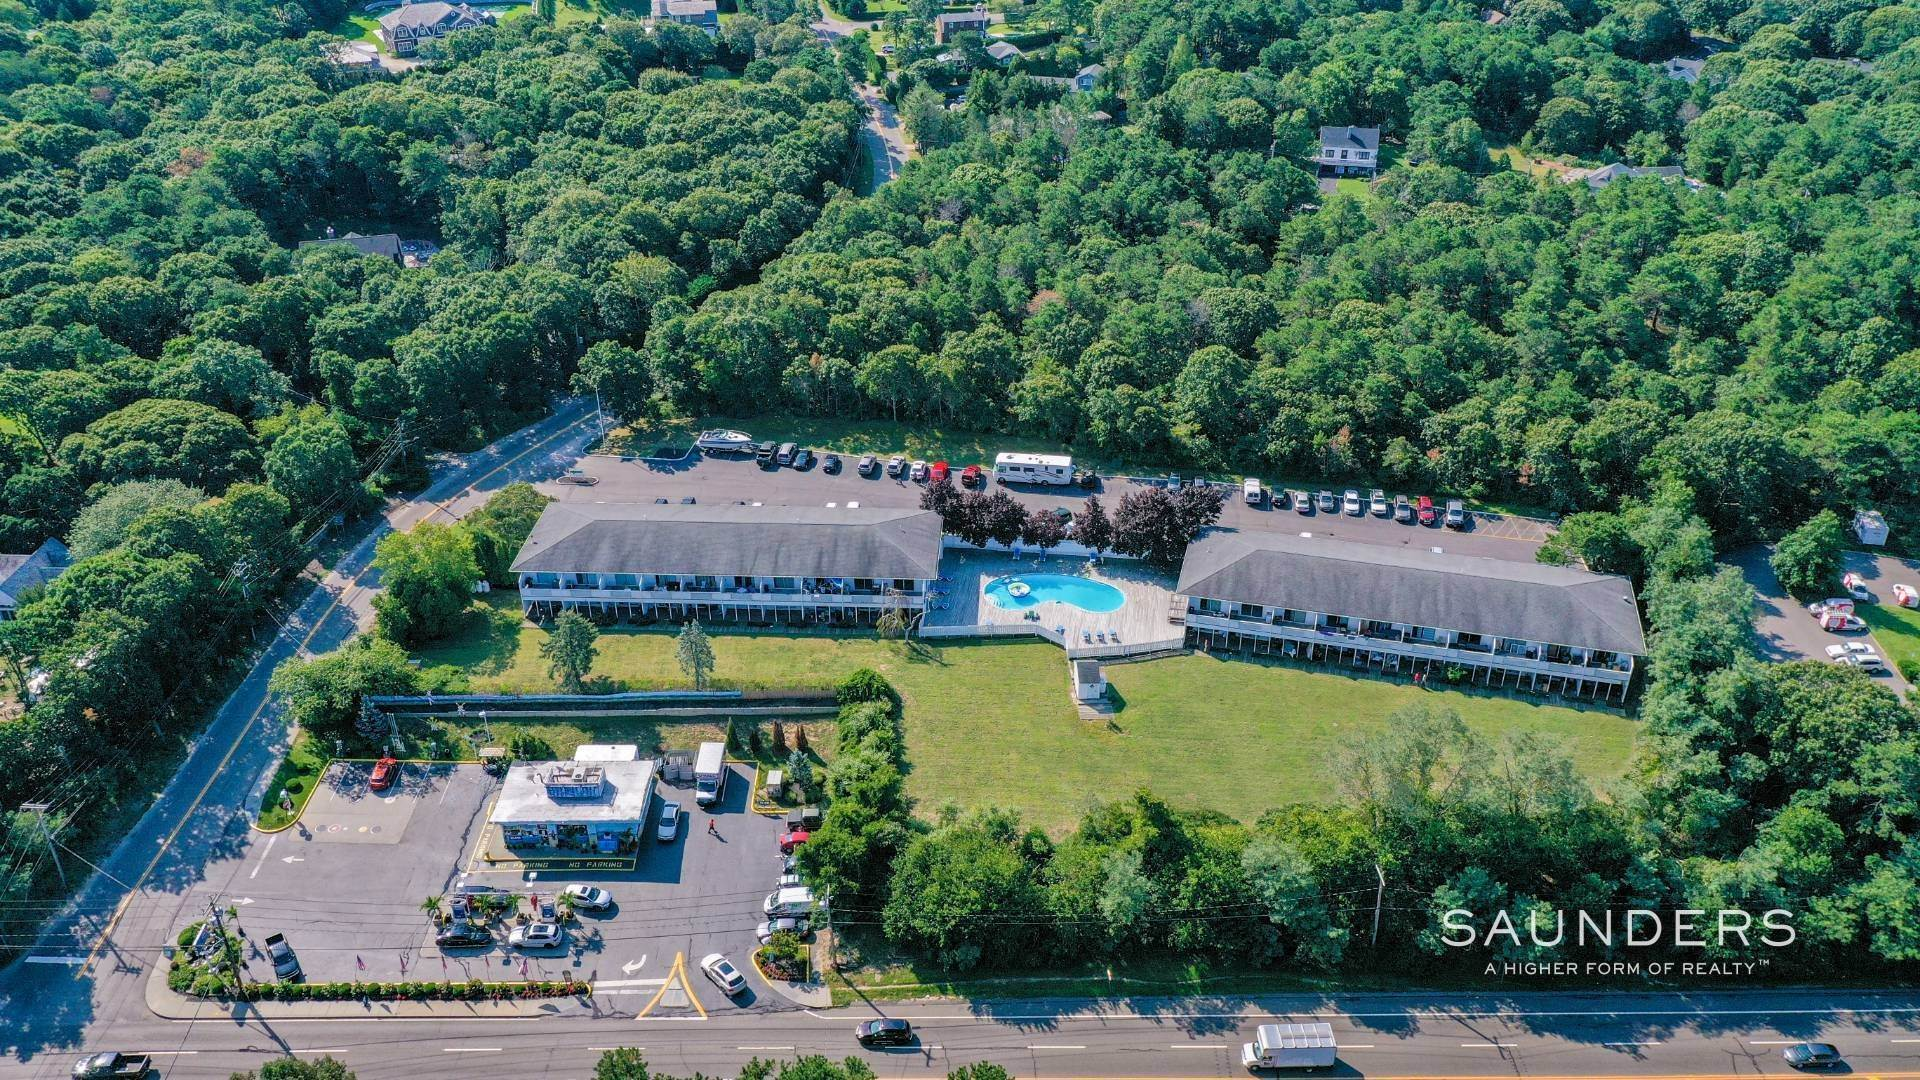 Commercial for Sale at Just Listed! Southampton Hotel 161 Hills Station Road, Southampton, Southampton Town, NY 11968